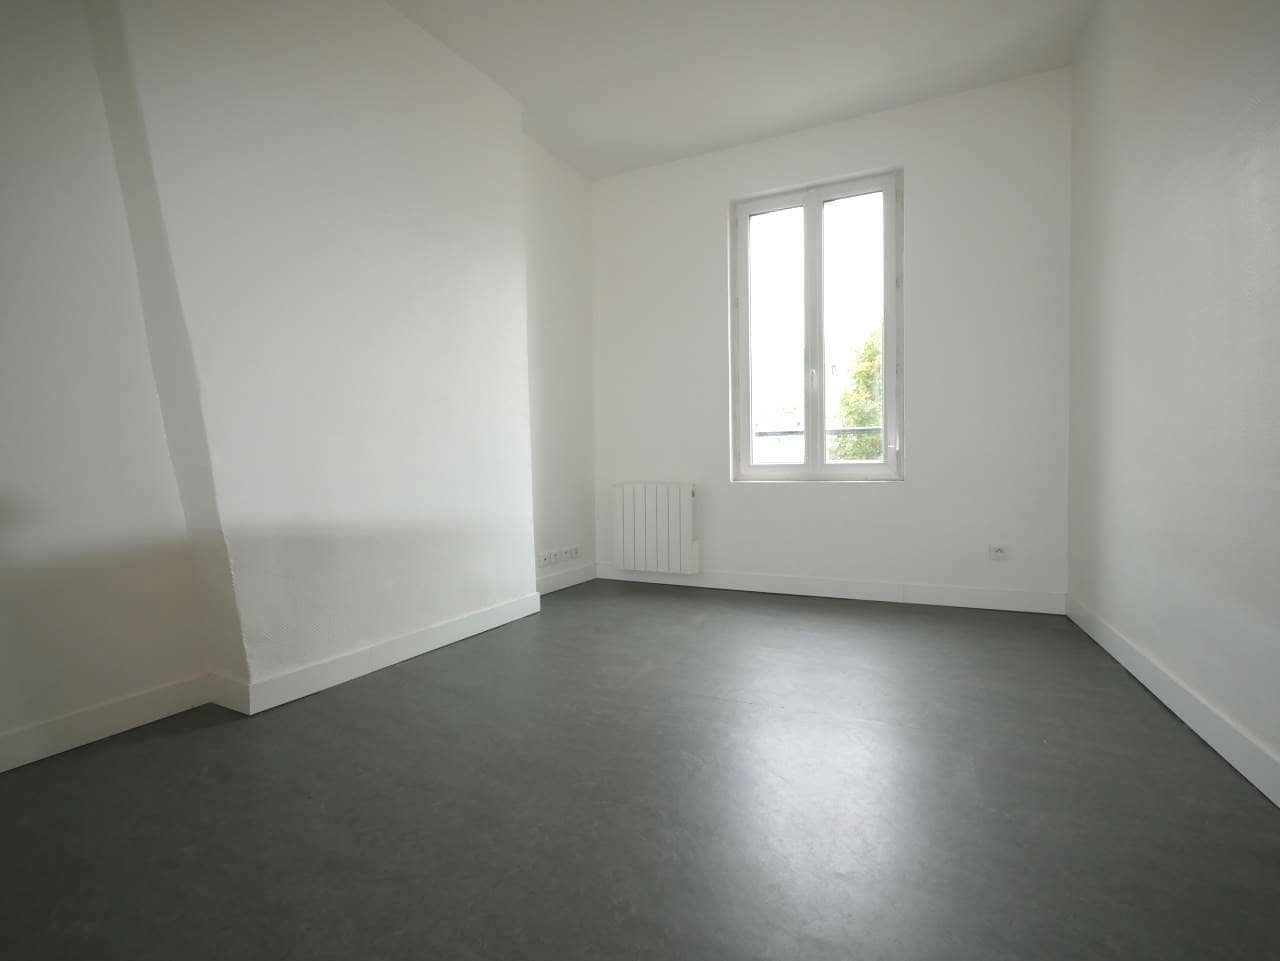 Location Appartement type F2 Le Havre 232